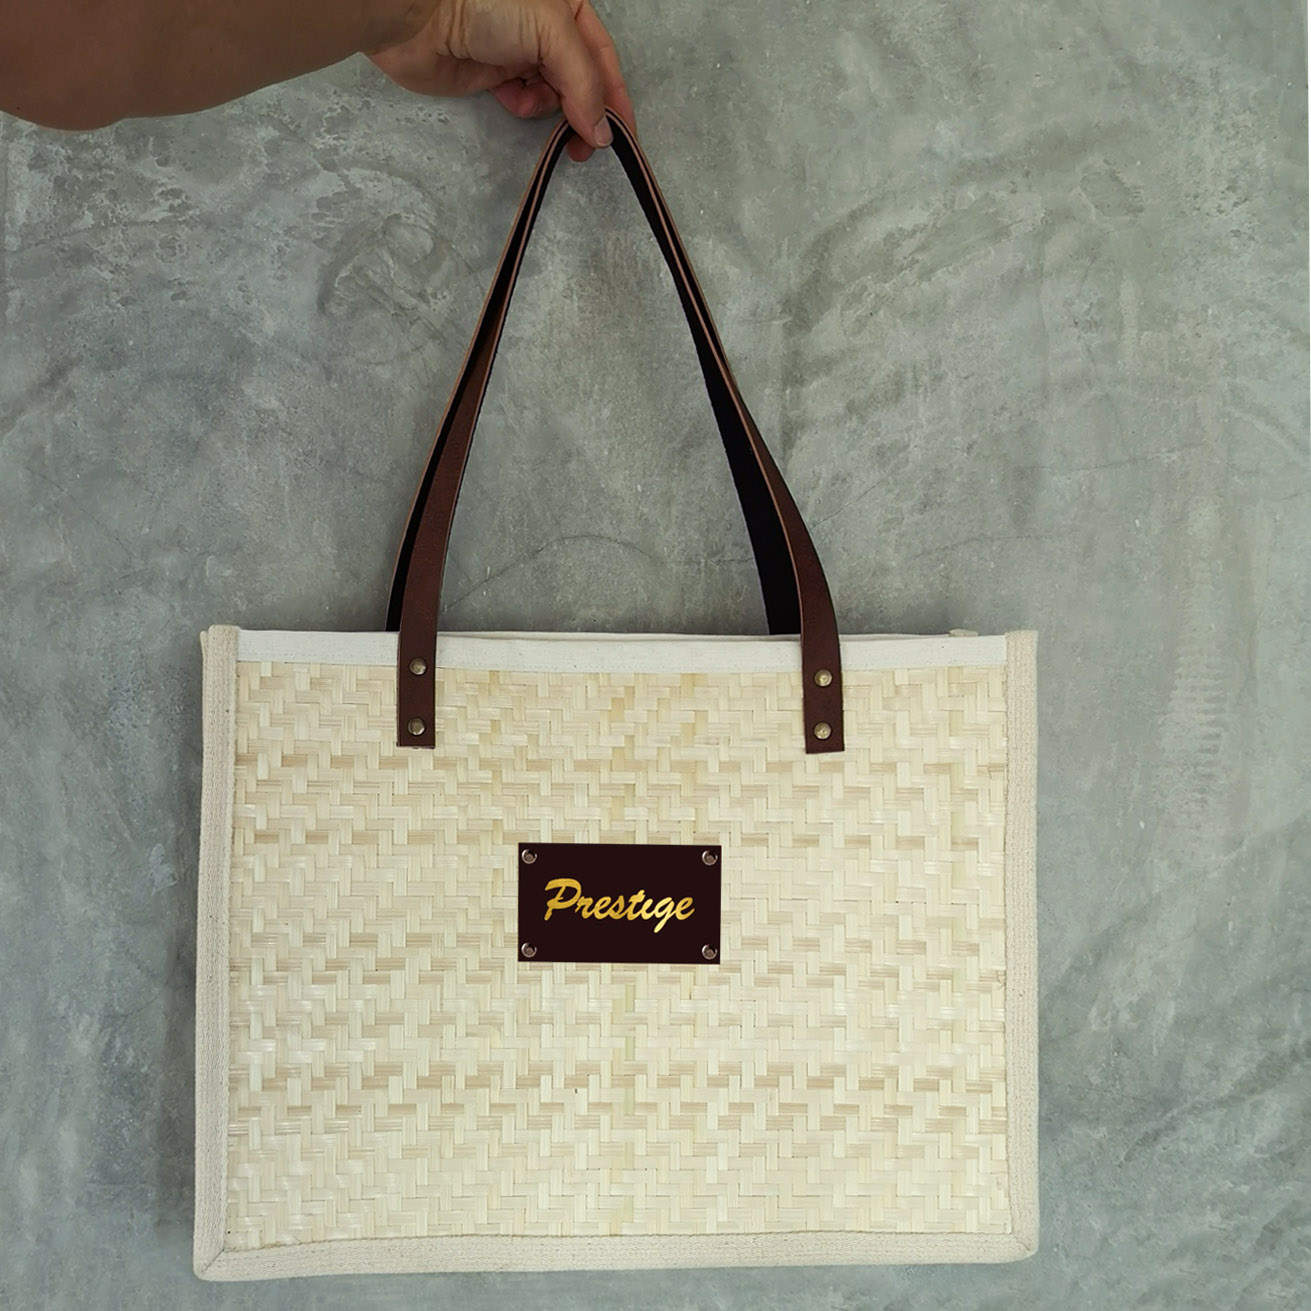 bamboo eco bag design